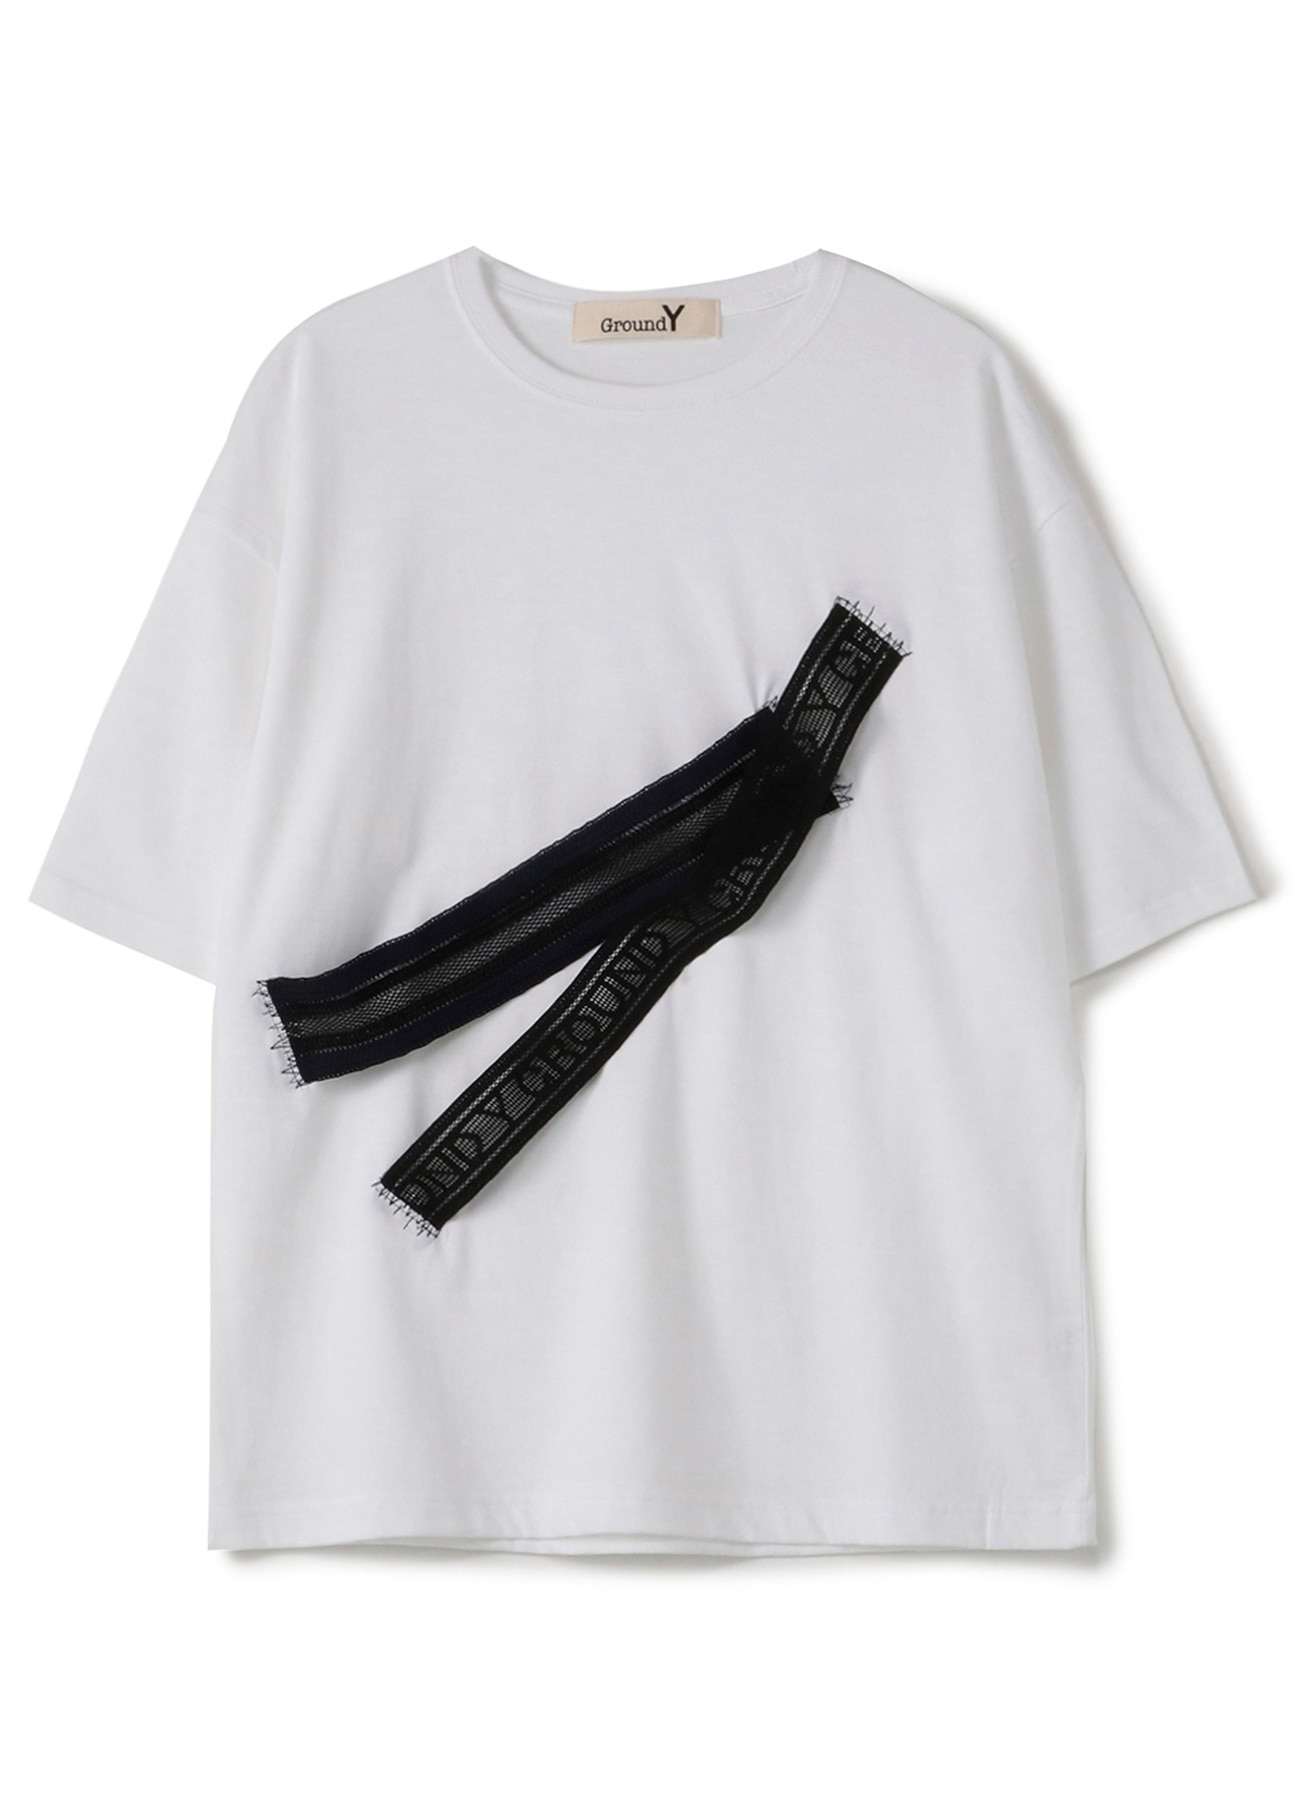 Tape 5.6oz cotton Jersey Original tape Big T-Shirt D